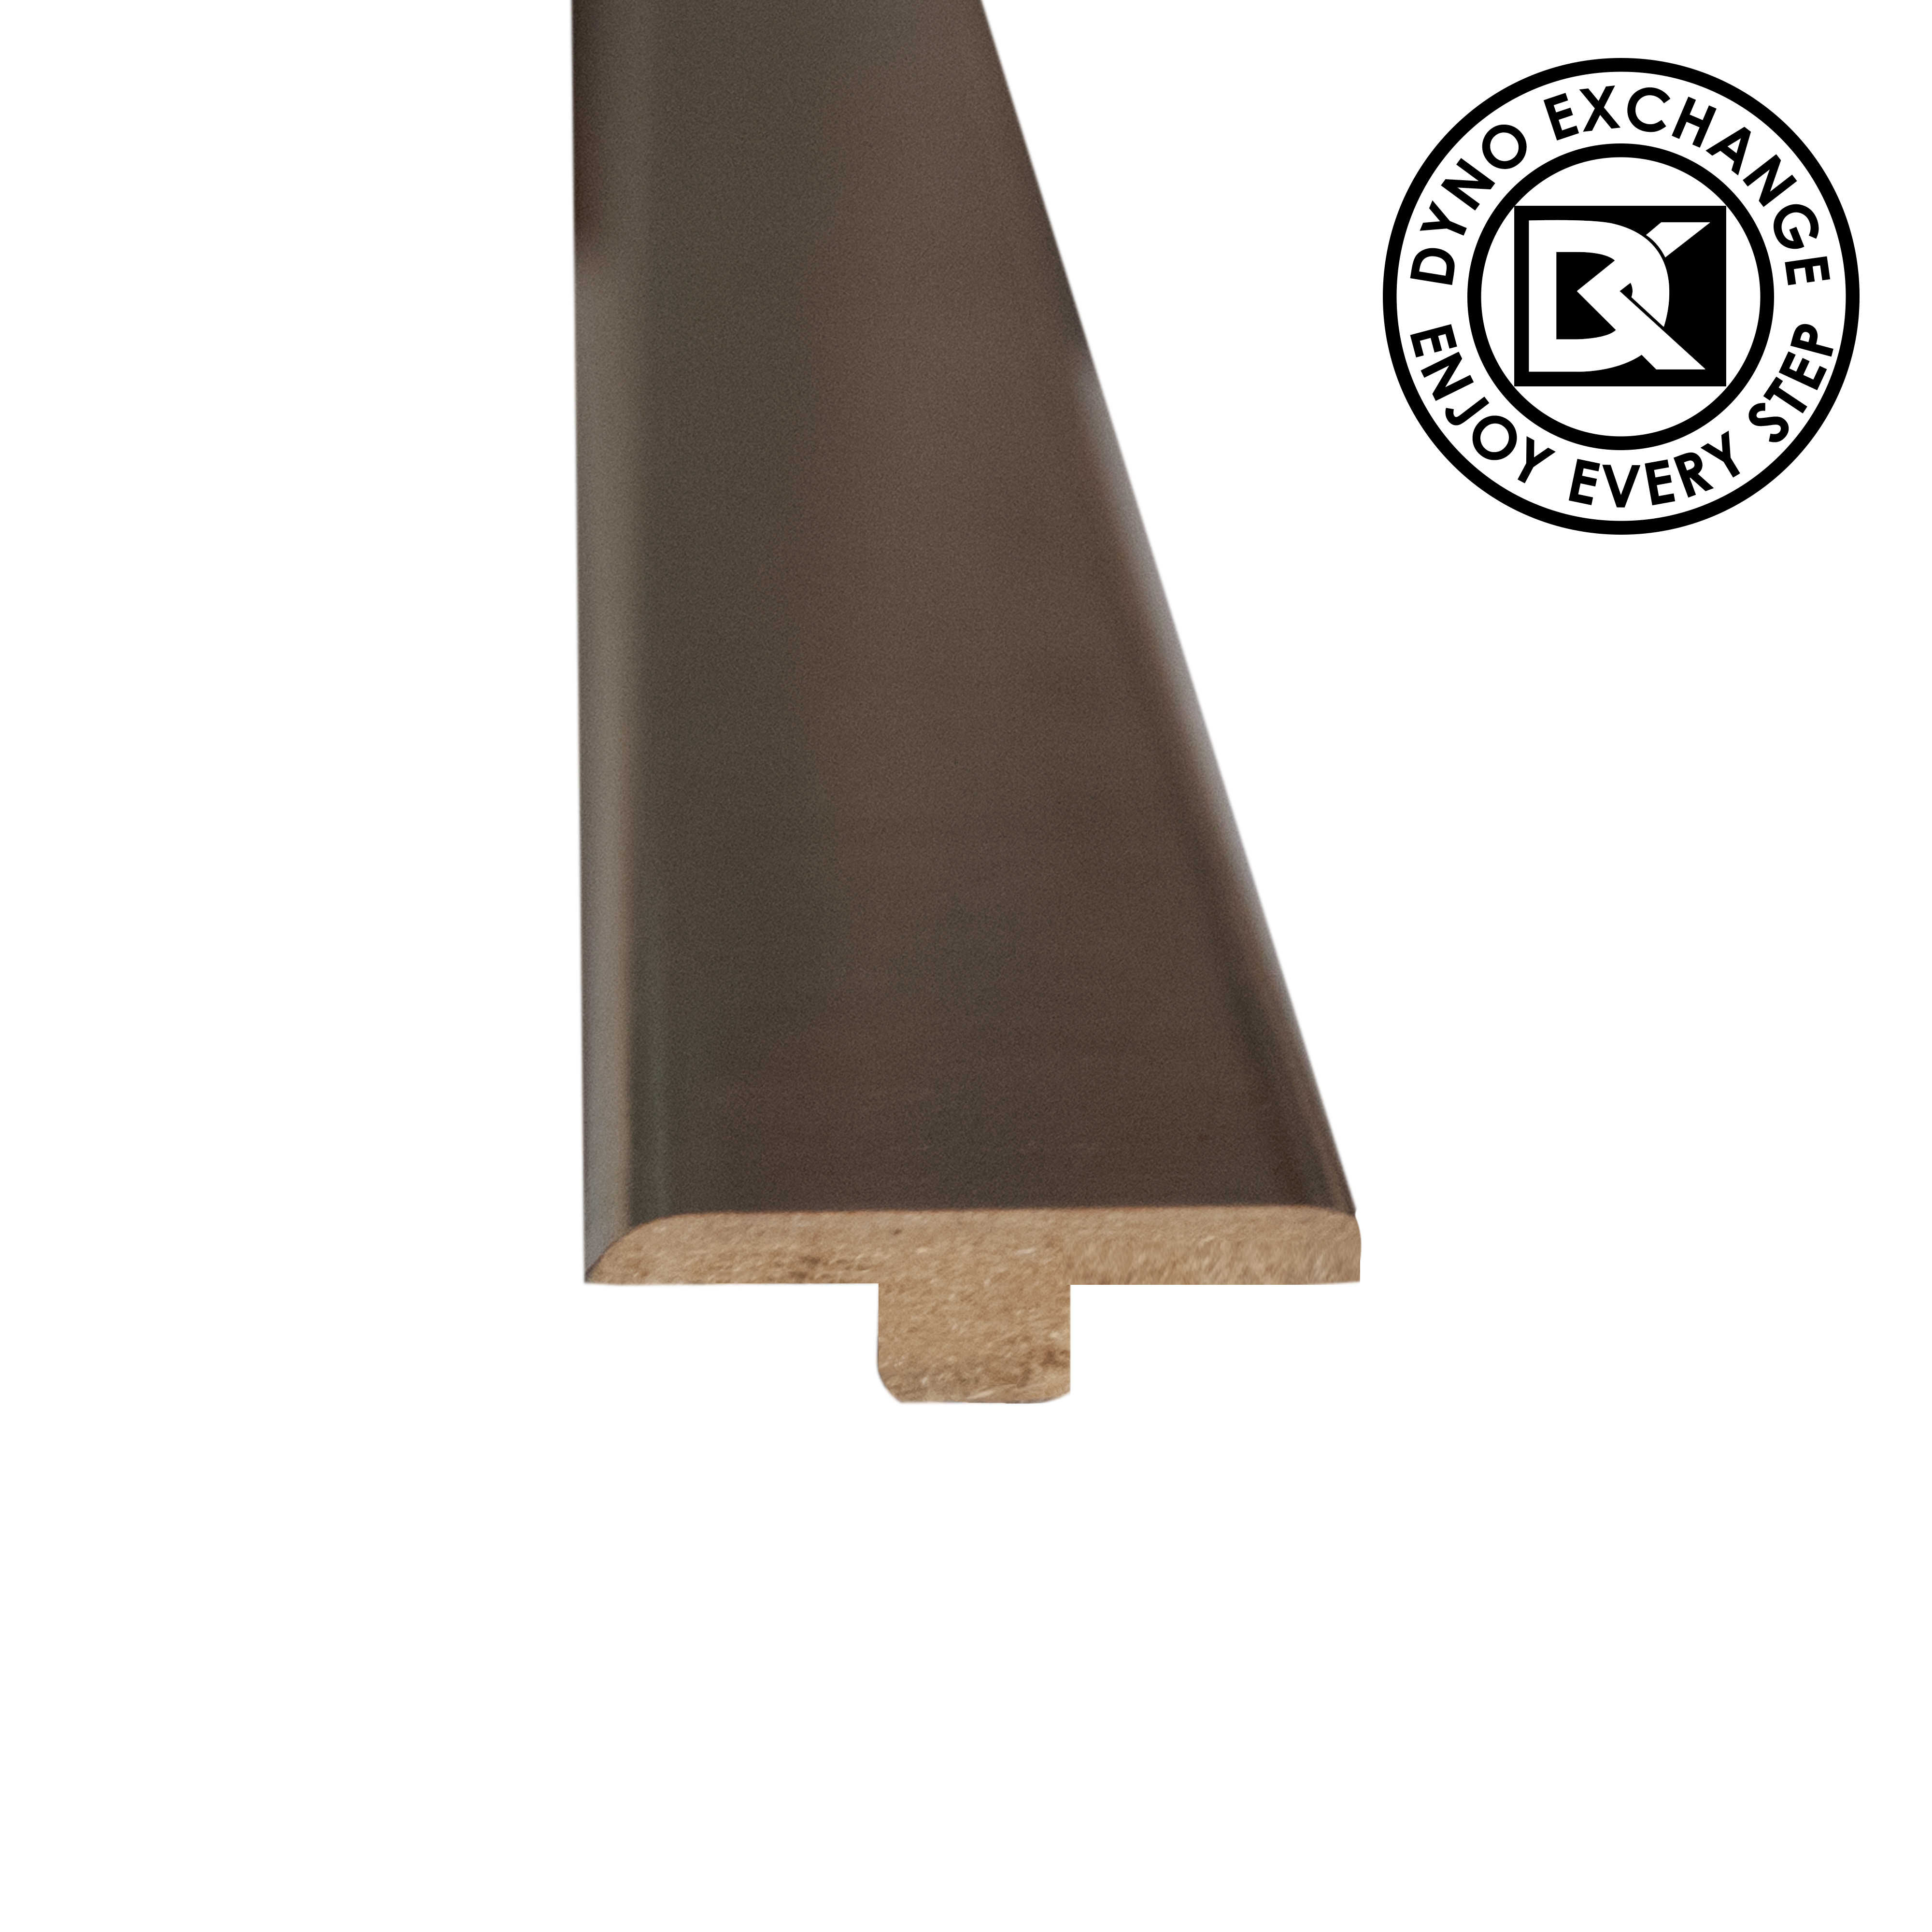 T Molding, Macadamian Walnut - Impact Collection, 8'